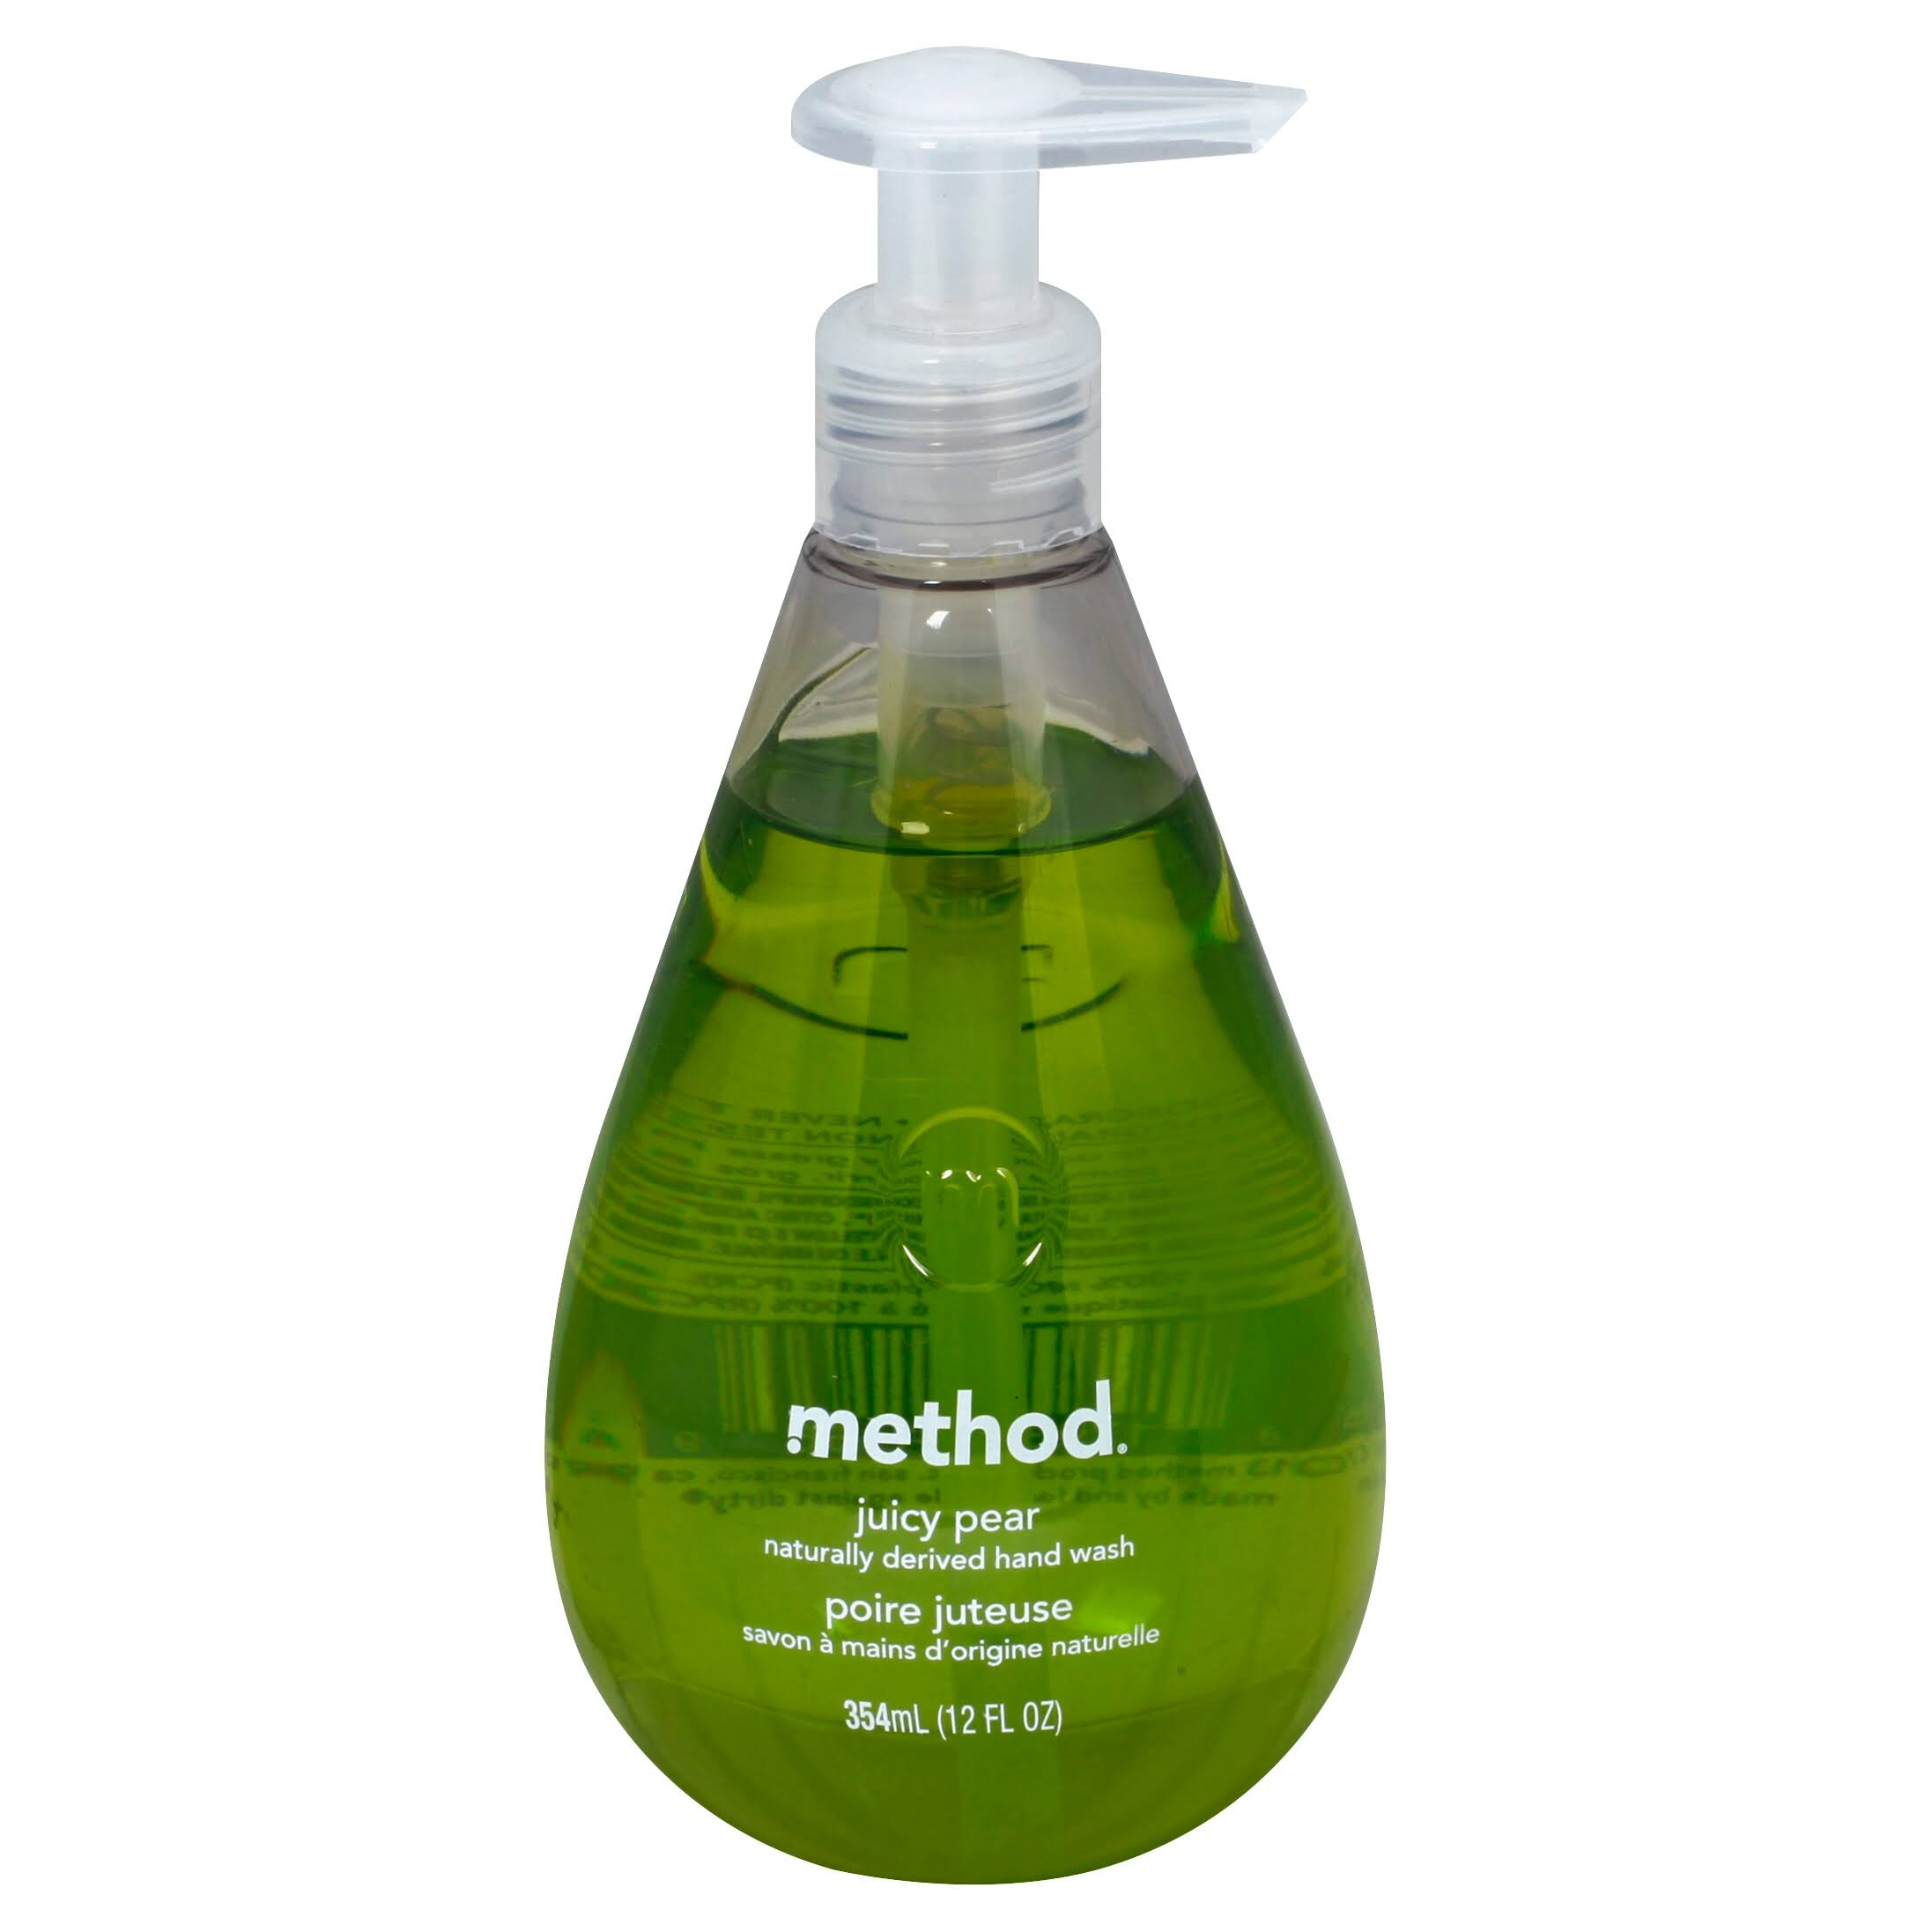 Method Hand Wash - Juicy Pear, 354ml